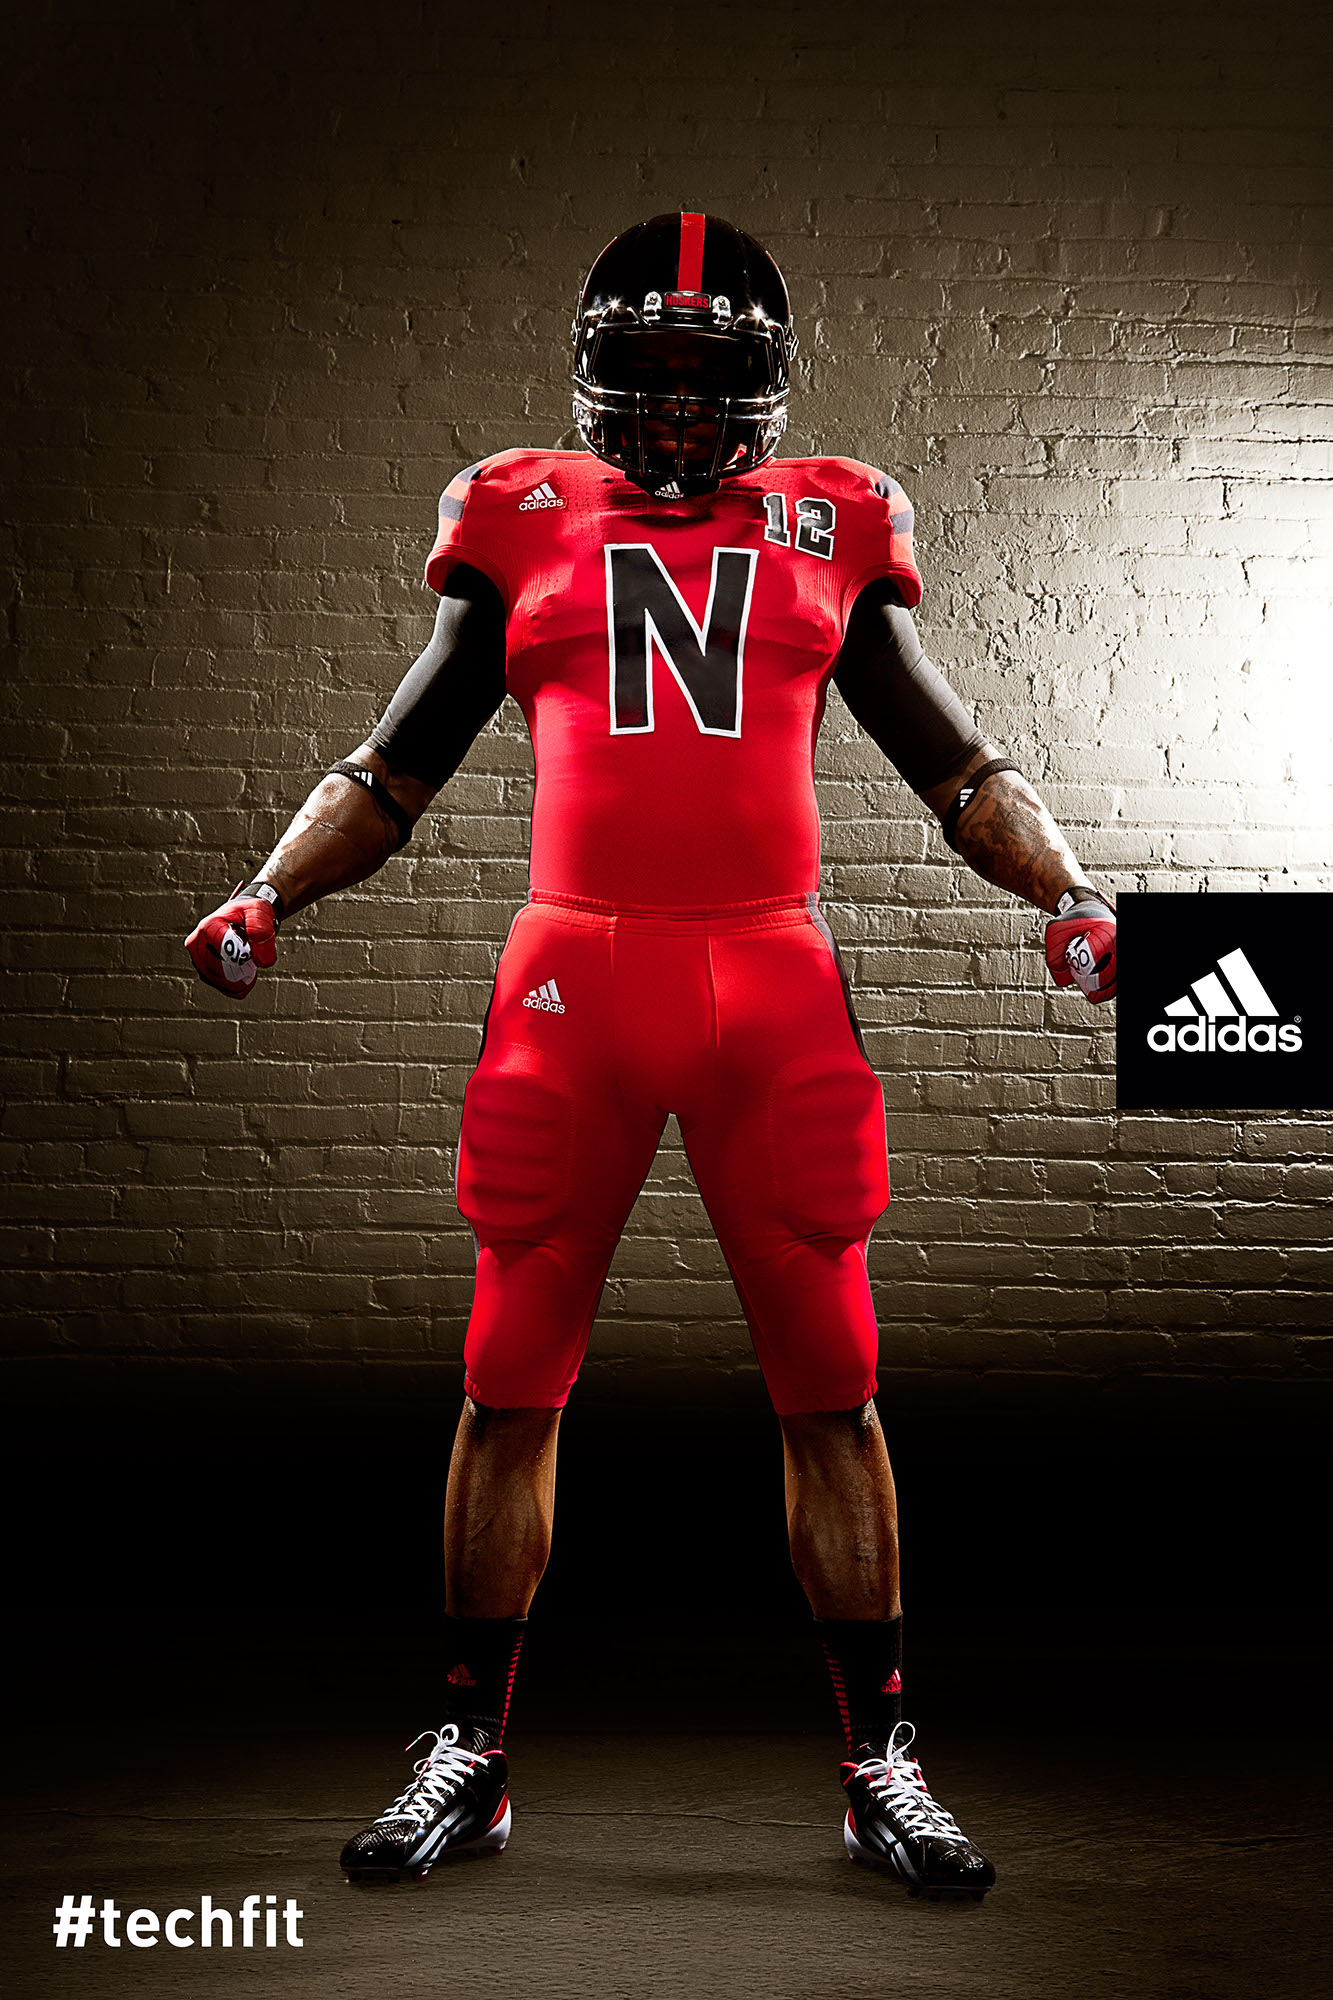 quality design ad433 ce4e9 Wisconsin Badgers unveil alternate uniforms for 'Huskers game